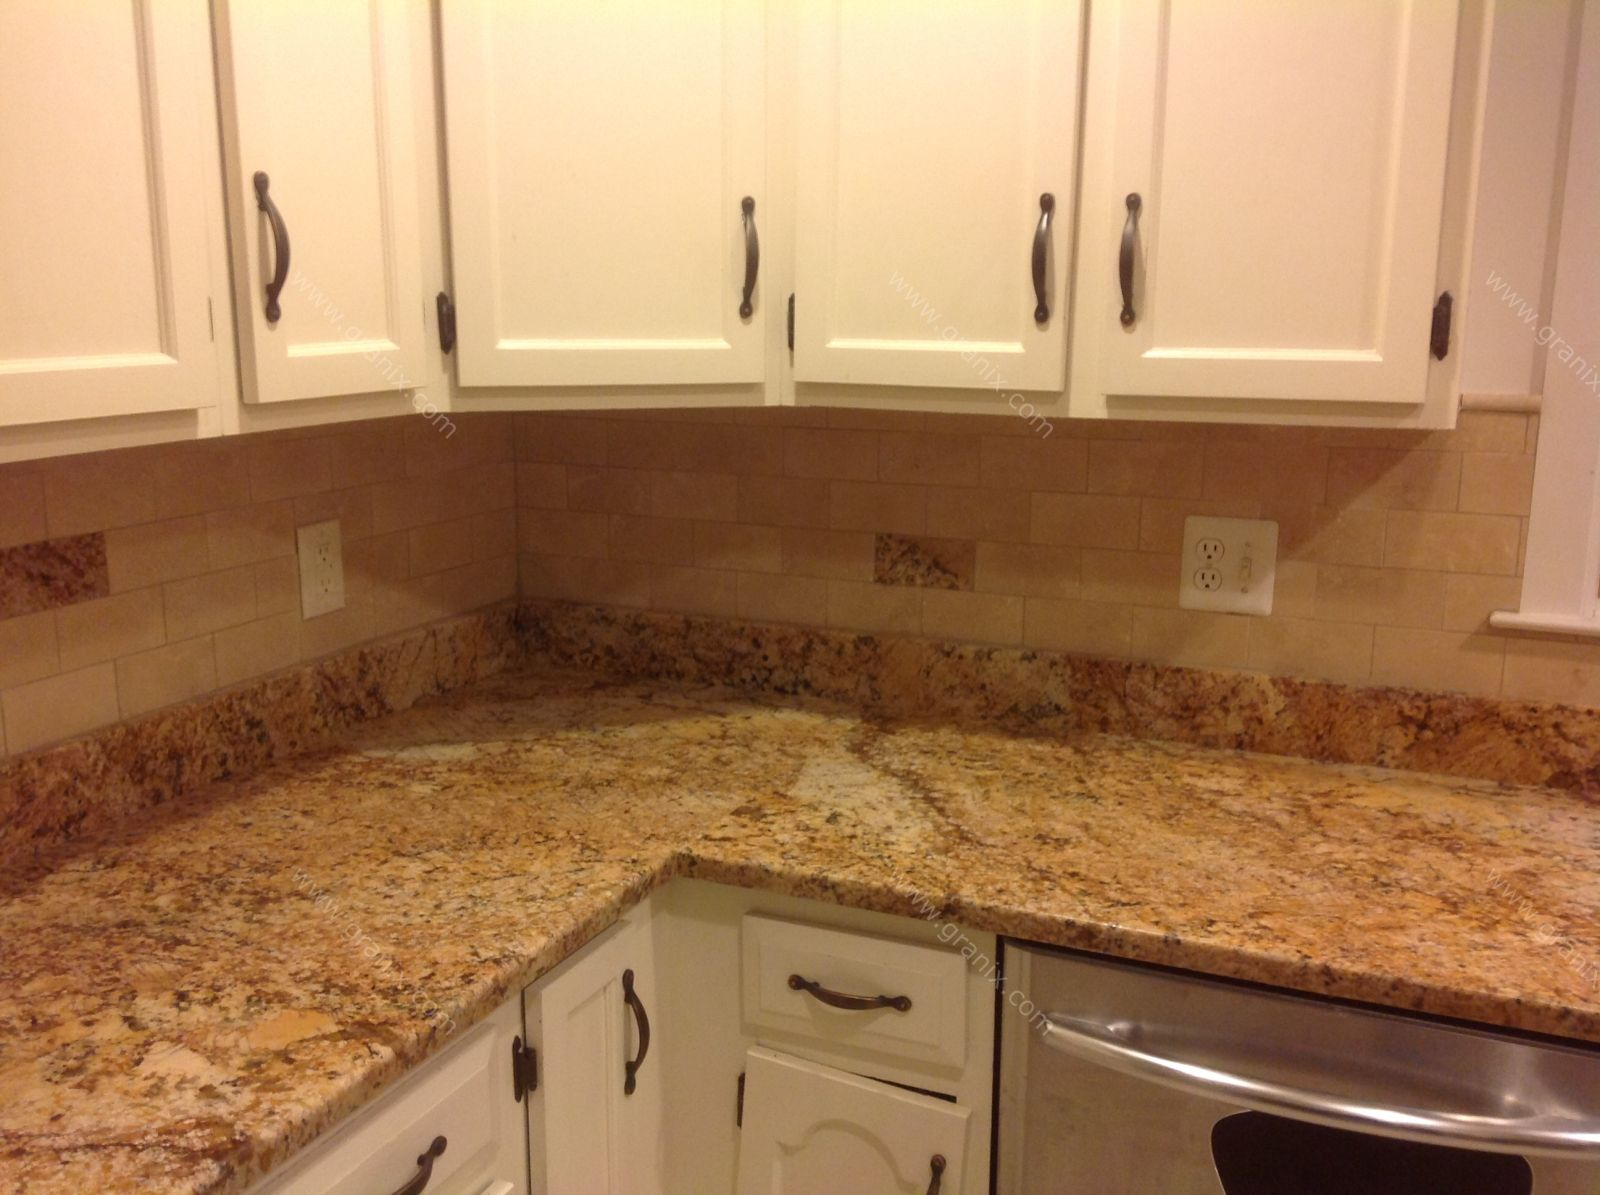 - & After) Solarius Granite Countertop & Backsplash Design - Granix